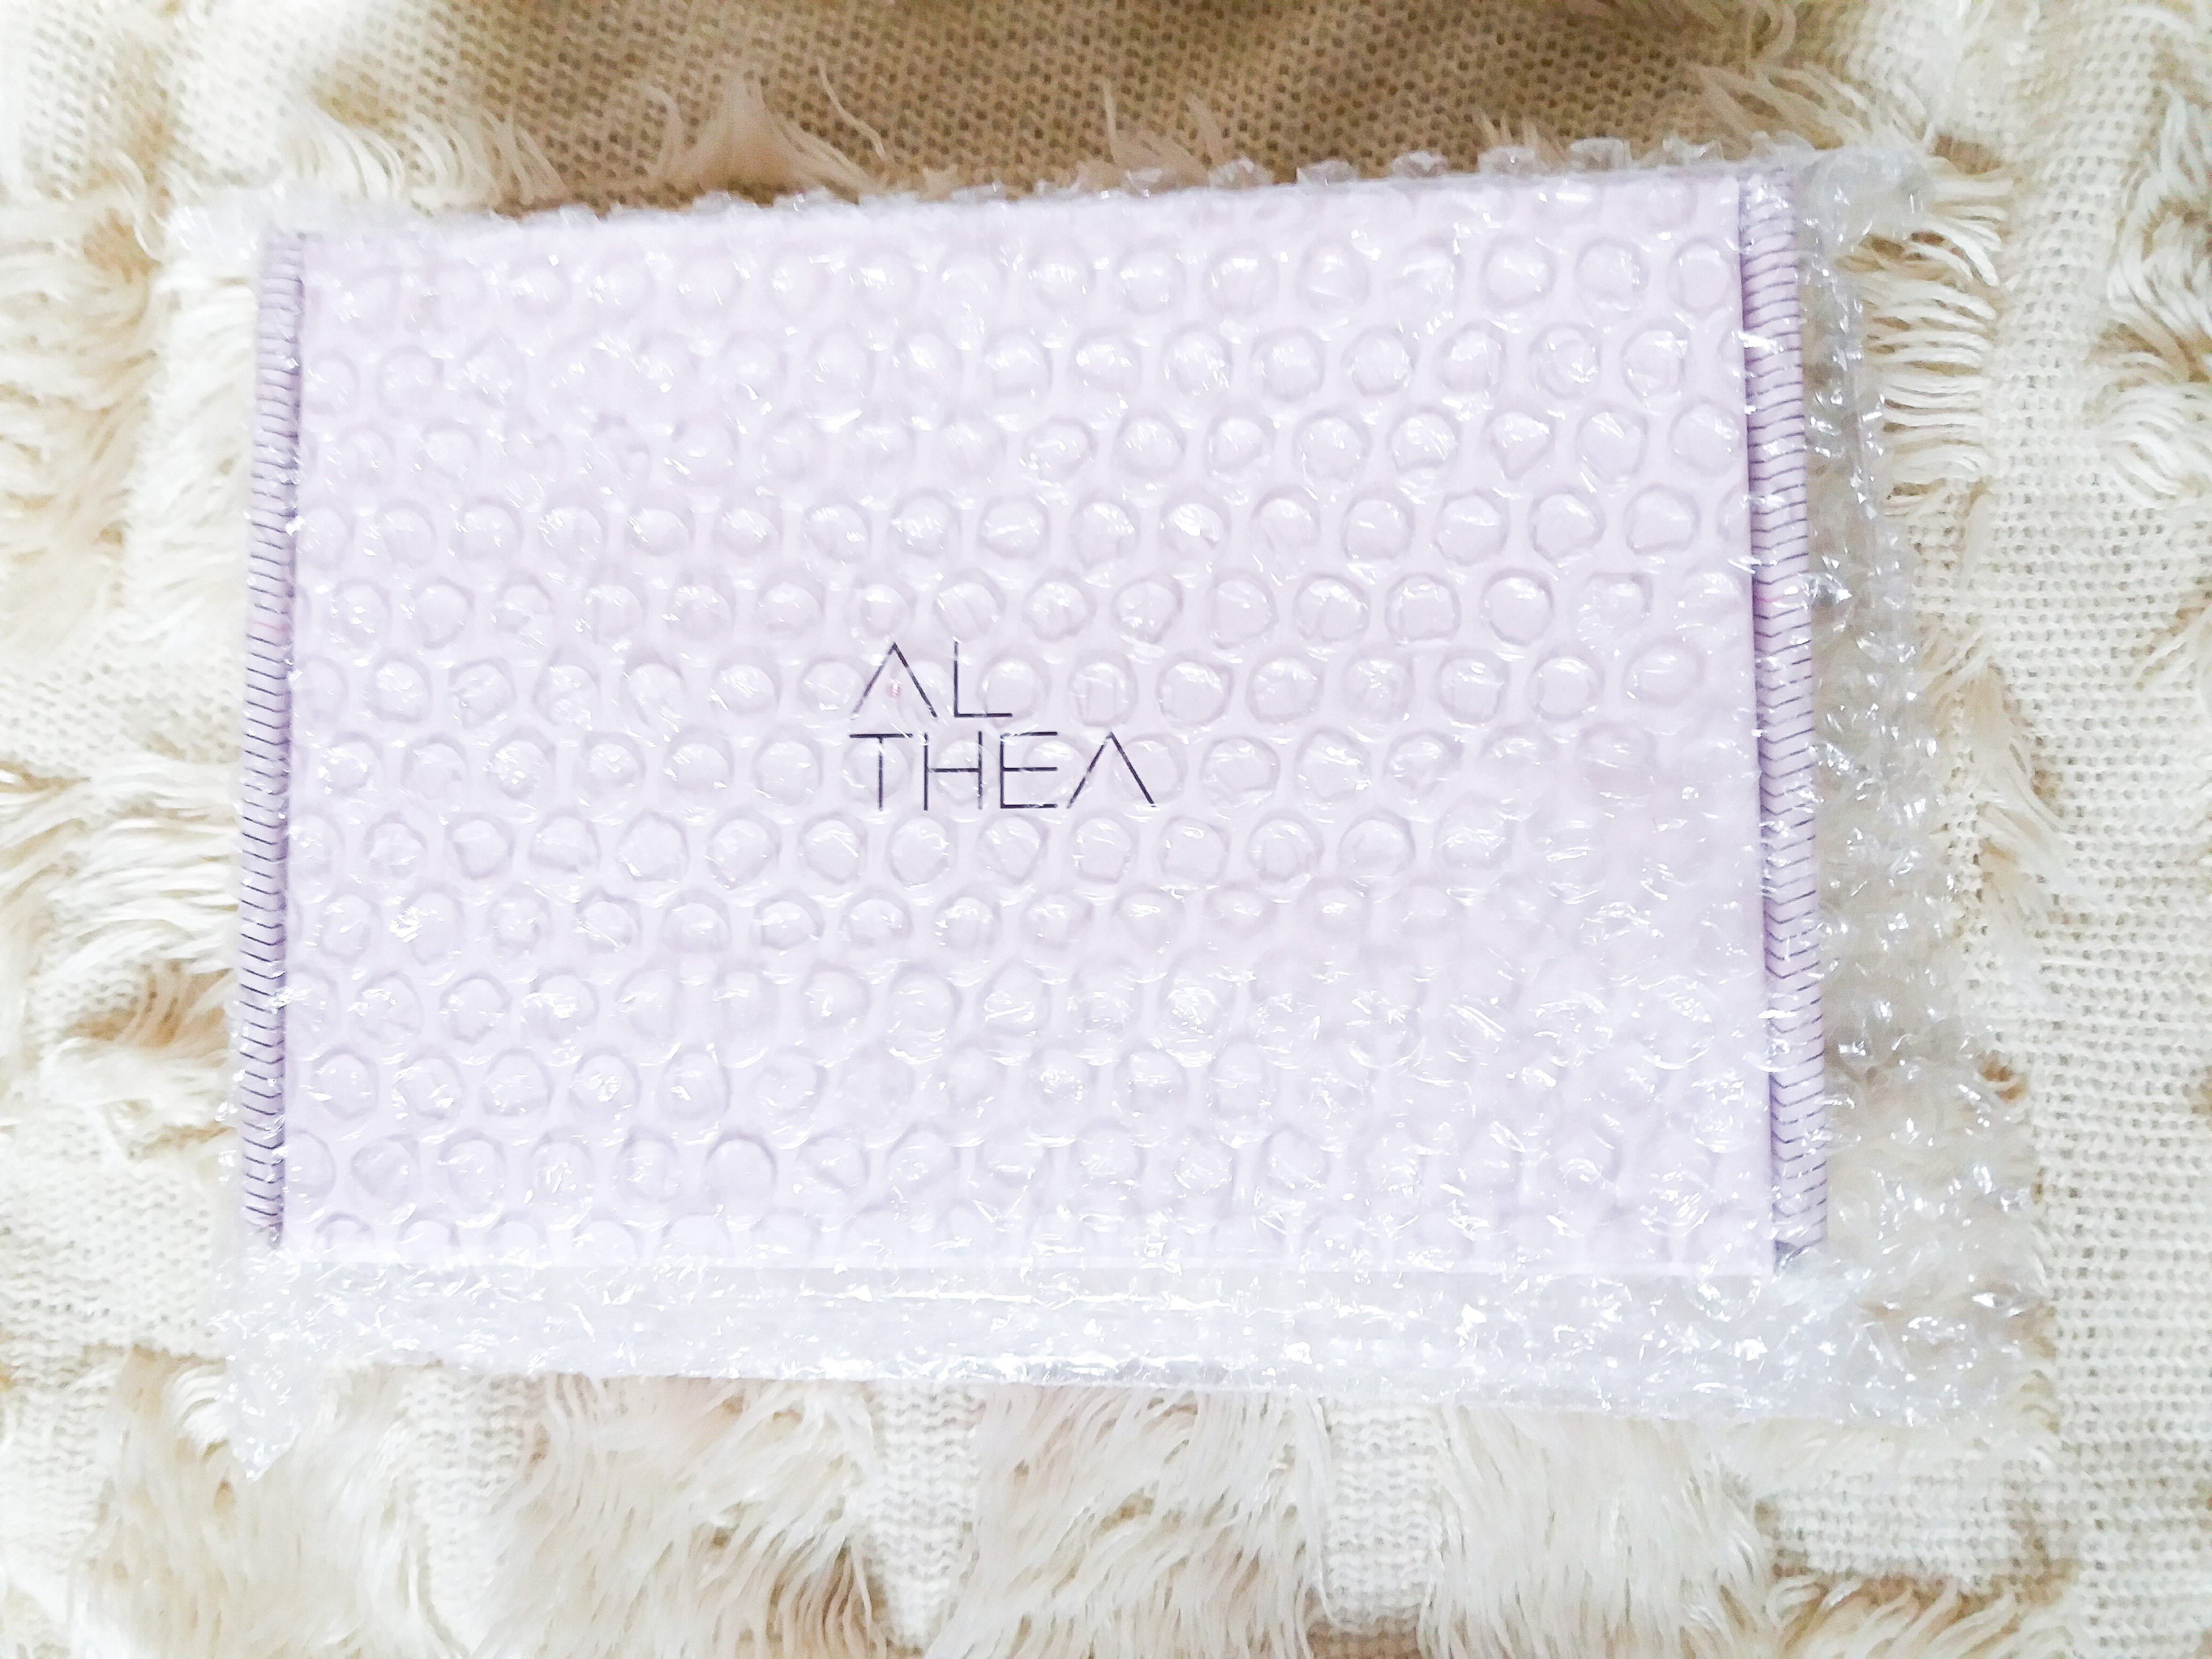 ALTHEA-SHOPPIG-EXPERIENCE-REVIEW-SHOPPING-AT-ALTHEA